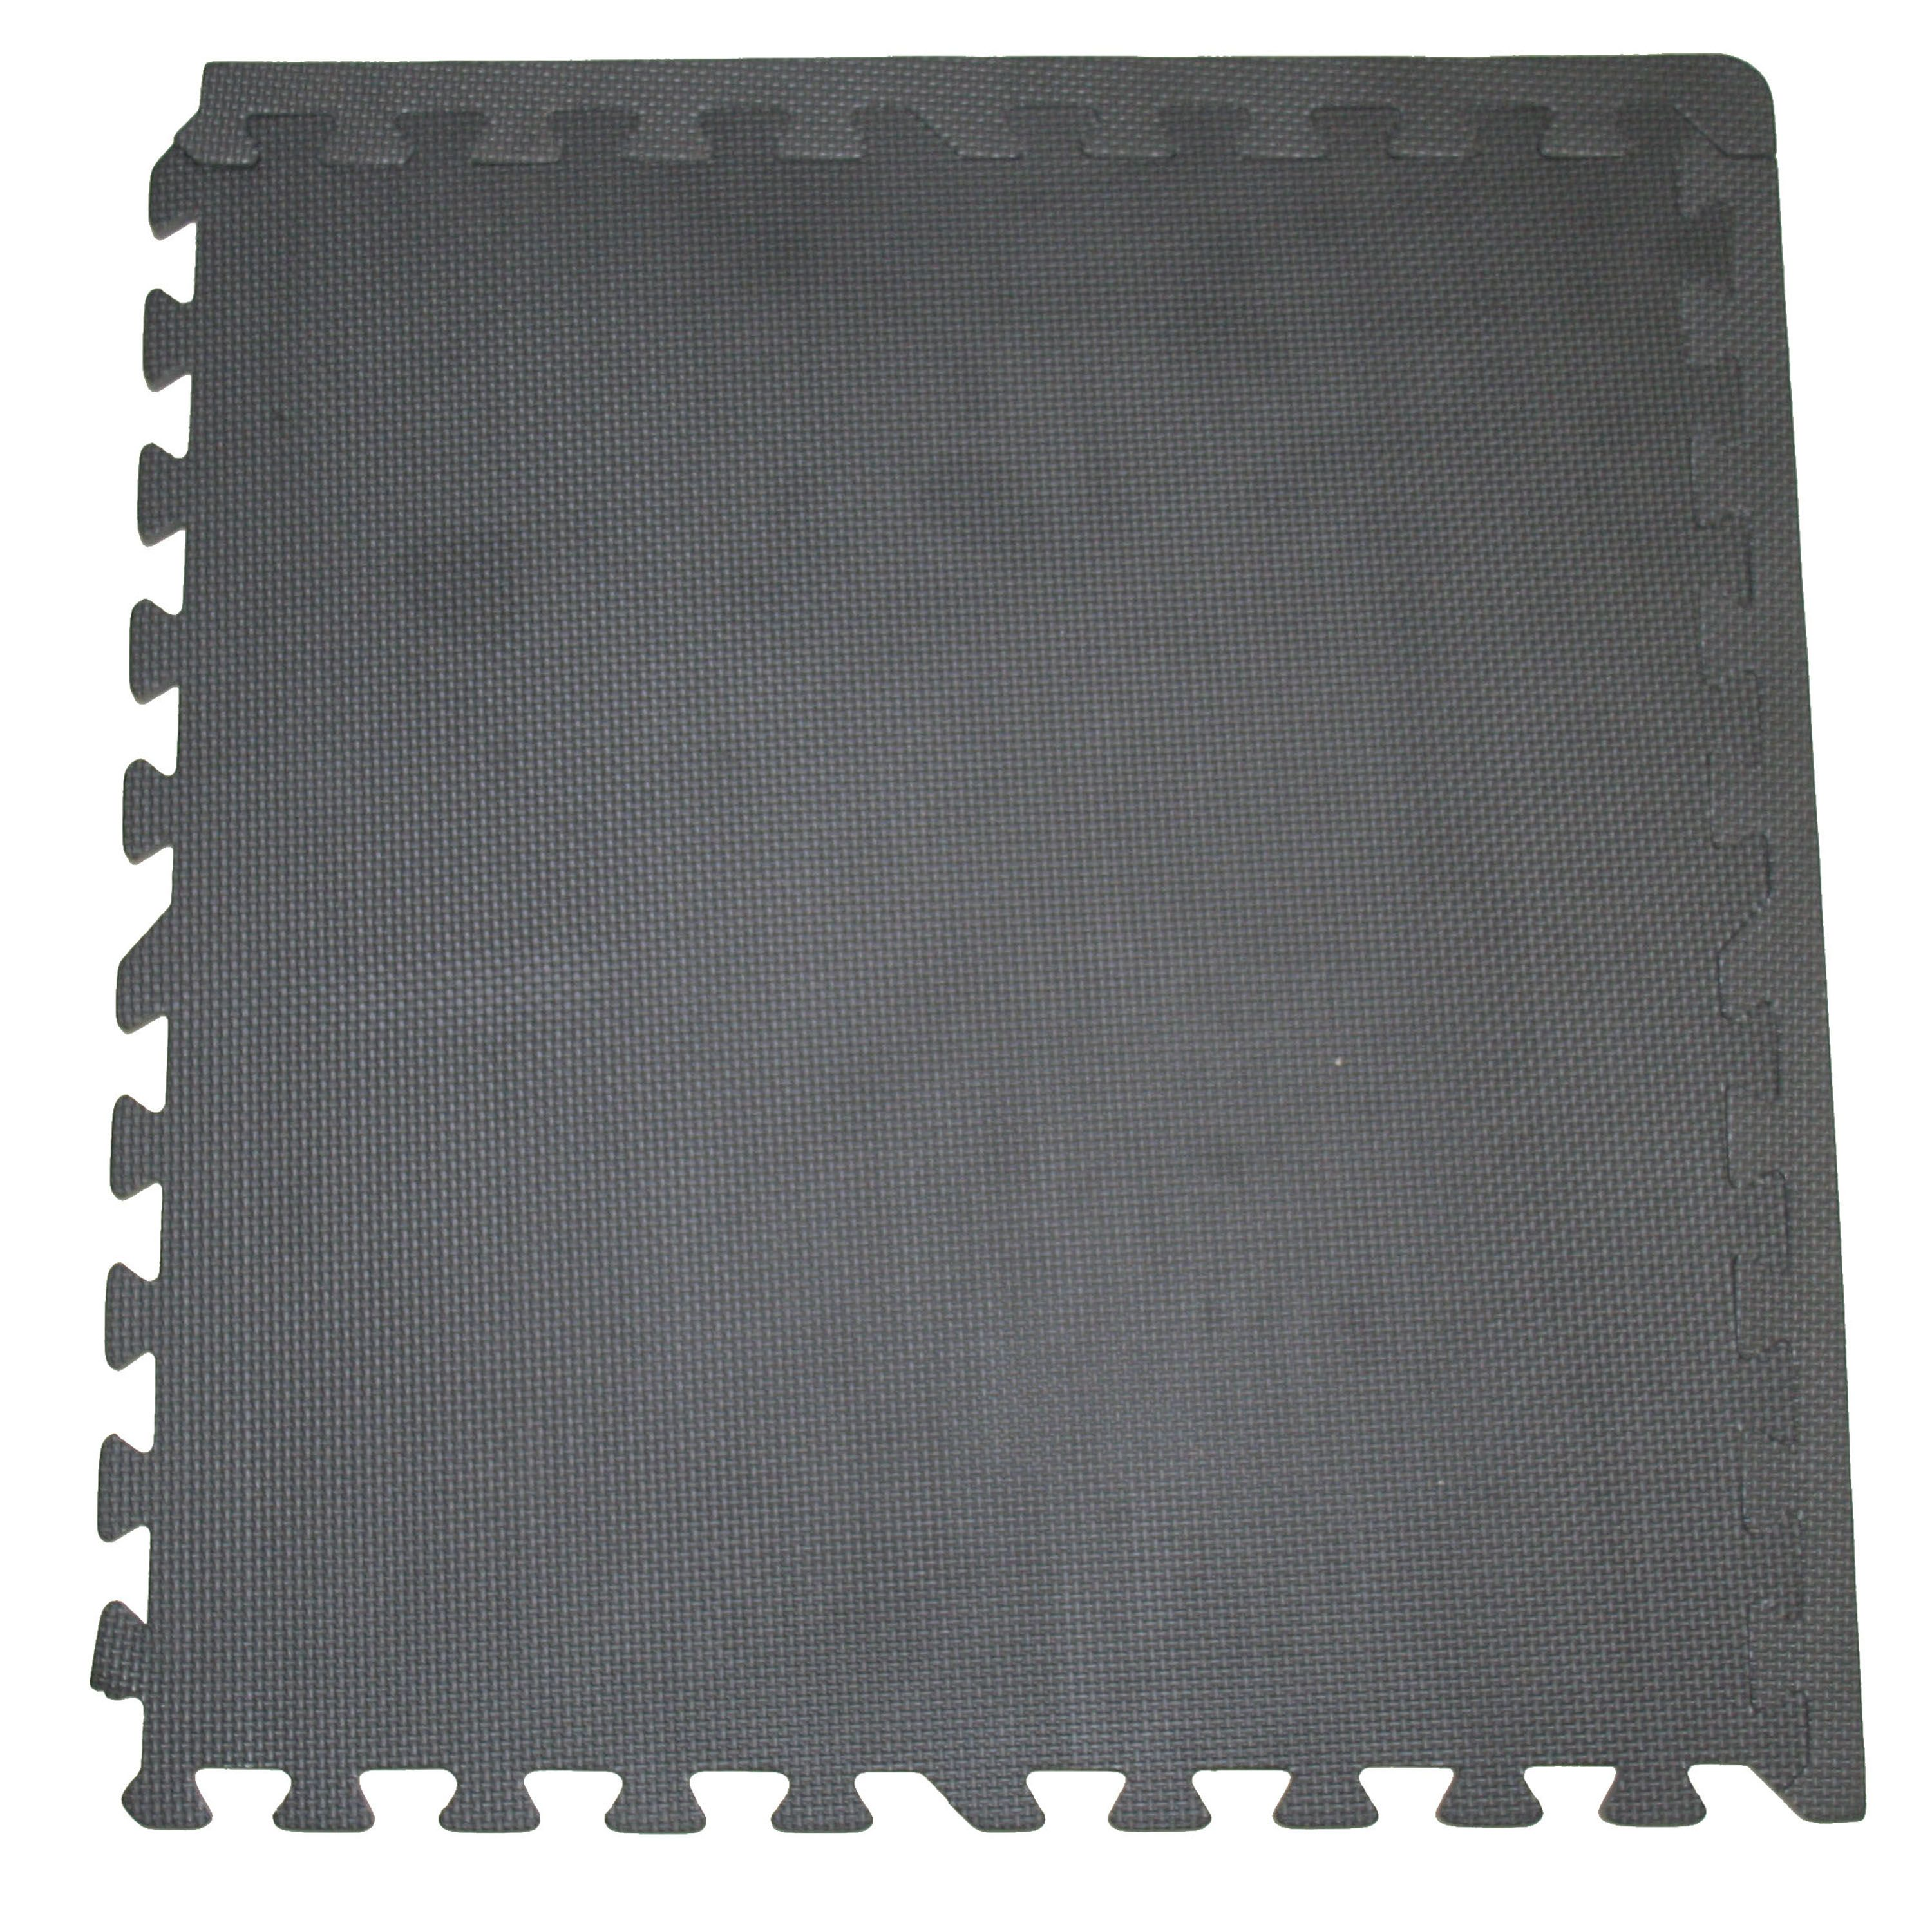 Interlocking solid black foam floor mats 4 pack fm12b bunnings interlocking solid black foam floor mats 4 pack fm12b bunnings warehouse 1490 dailygadgetfo Gallery